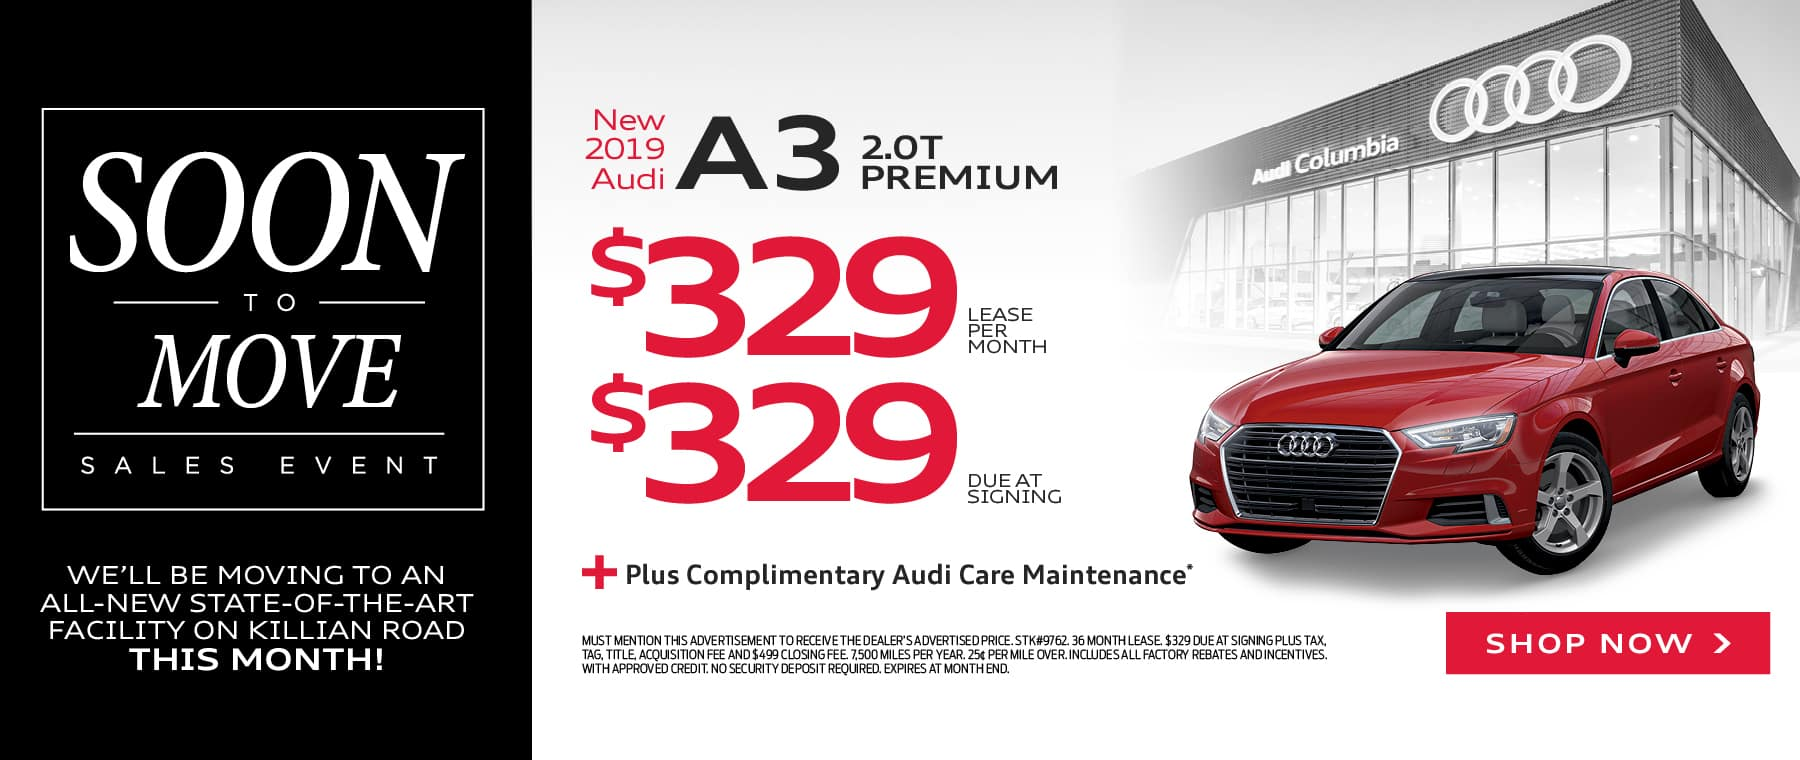 OCT SOON TO MOVE Audi a3